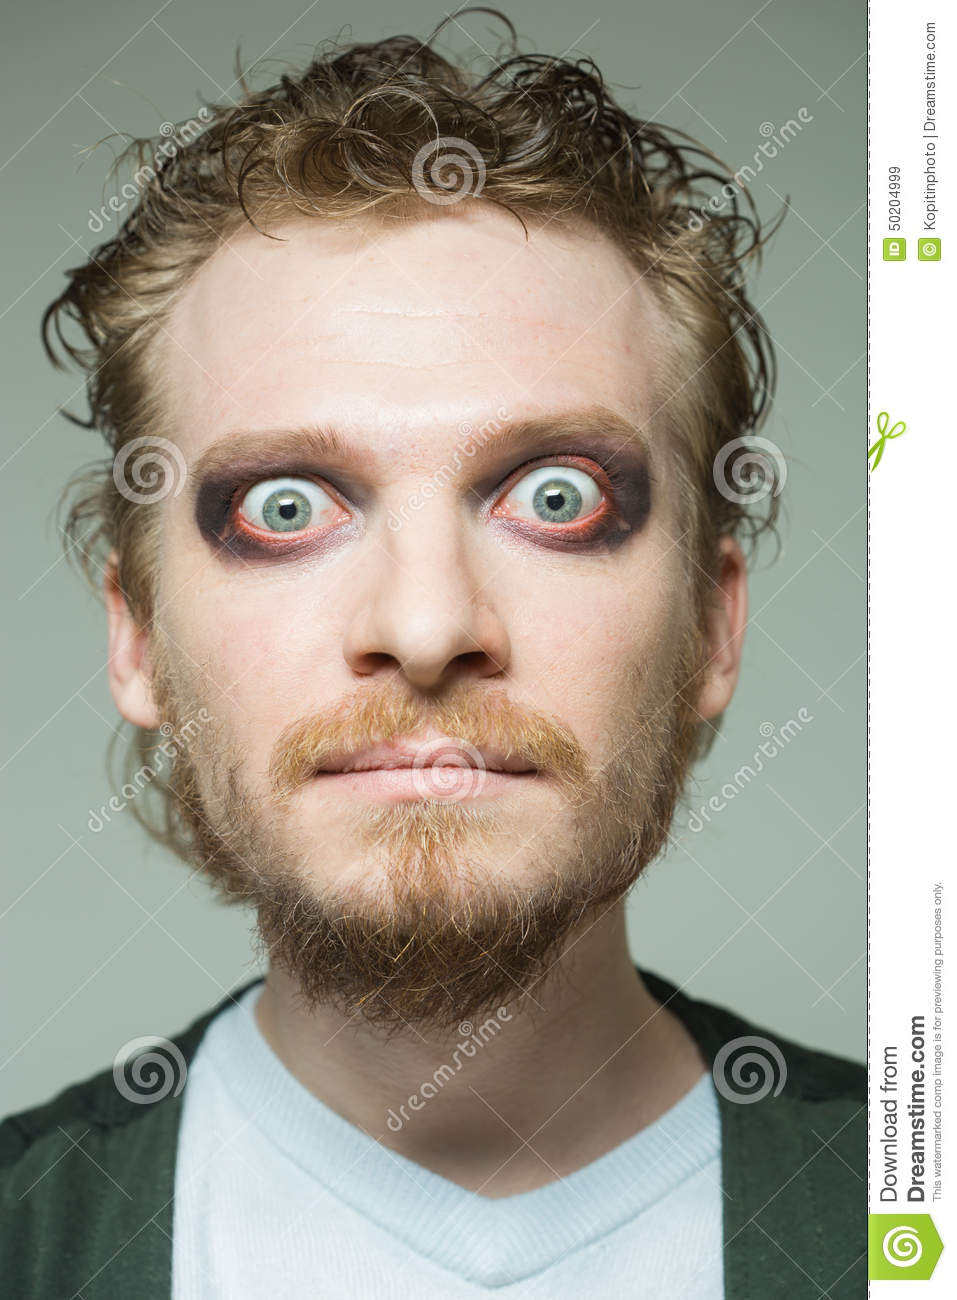 Portrait of a man with bulging eyes.